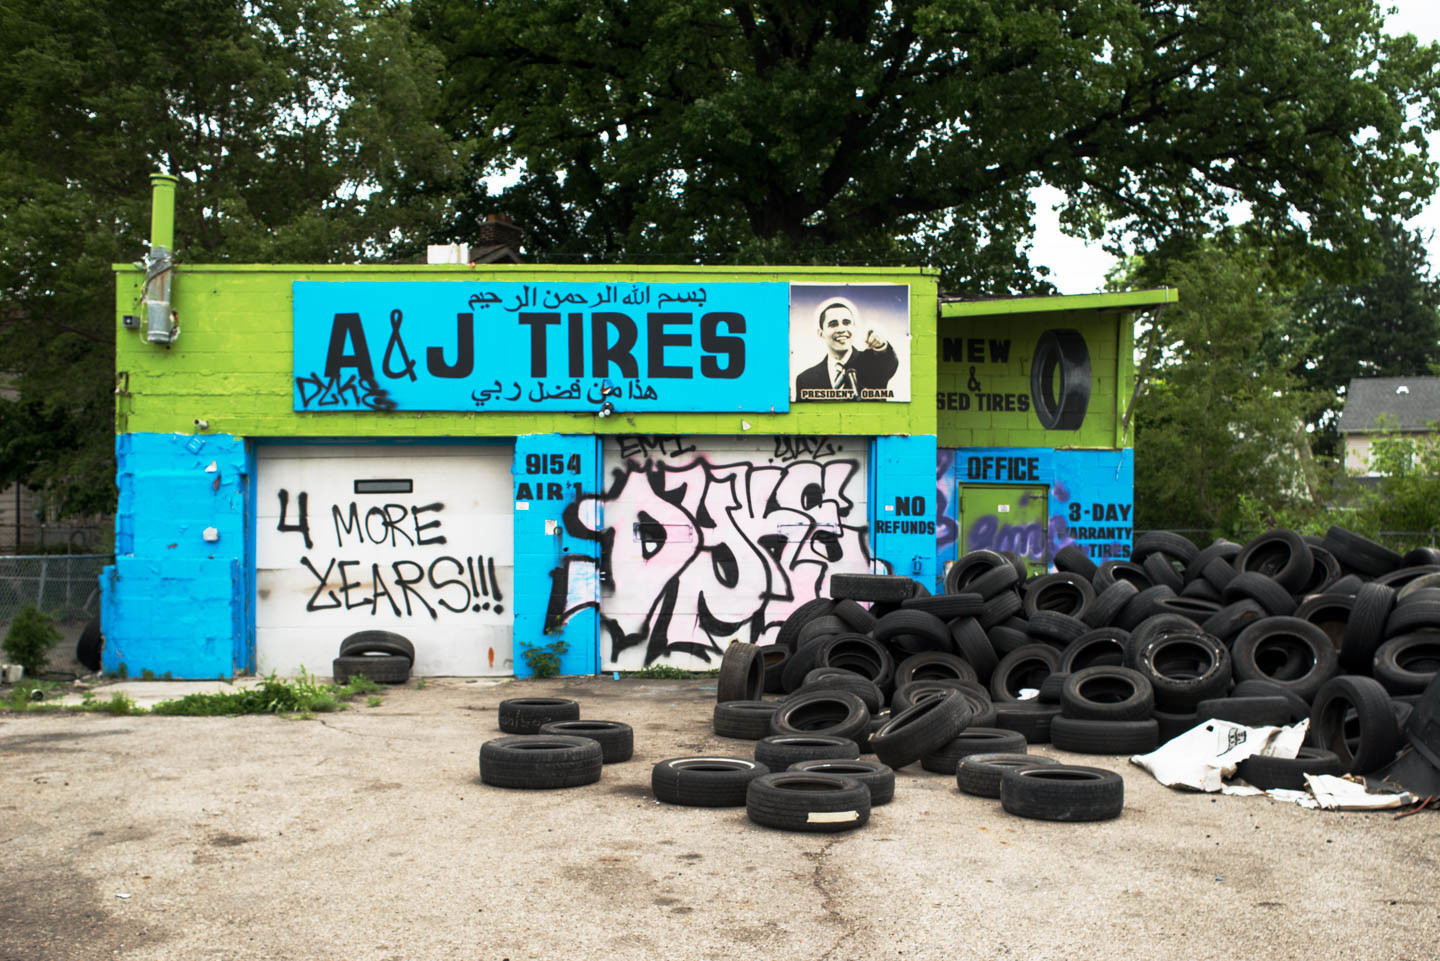 A. and J. Tires, 9154 Livernois Ave., Detroit, 2014 (above) and 2015 (right)